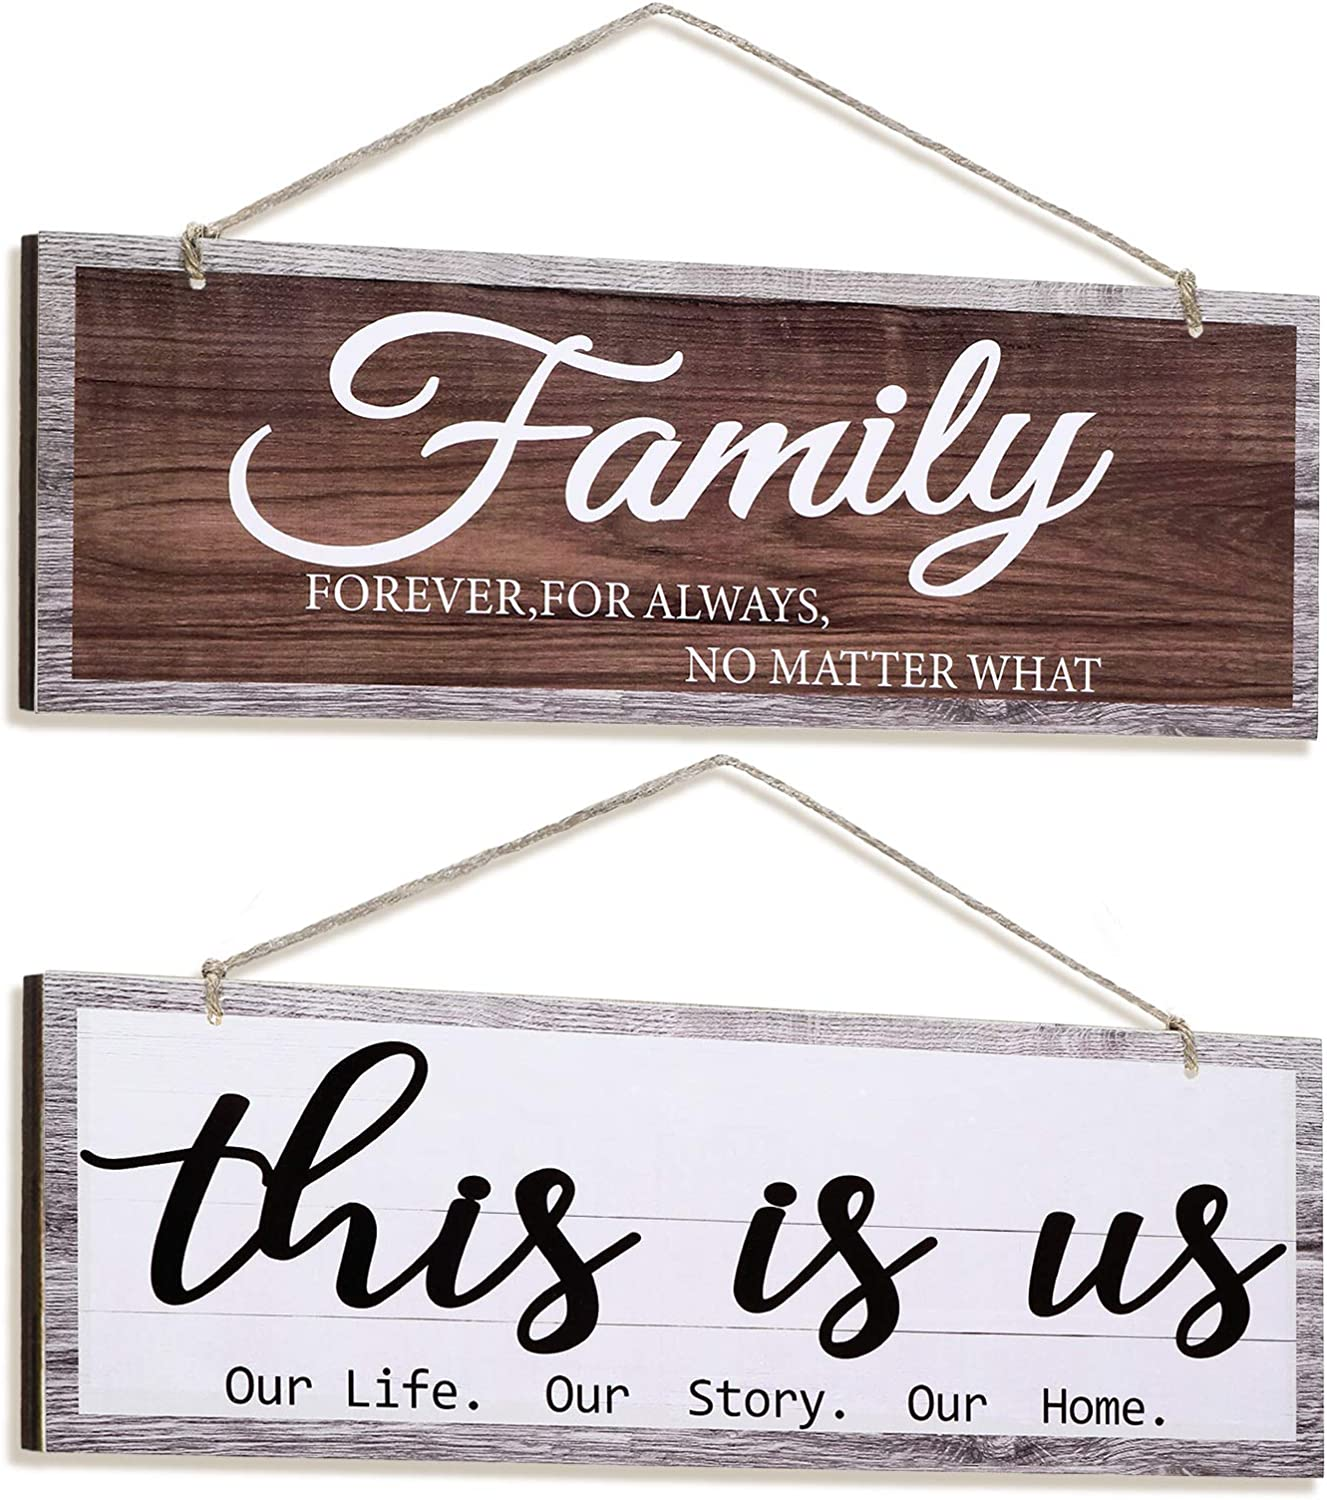 Jetec 2 Pieces This is Us Rustic Wood Wall Sign Family Hanging Wall Decorations Printed Wood Sign for Friends Living Room Bedroom Kitchen Dining Room Farmhouse Entryway Decor, 4.7 x 13.8 Inch